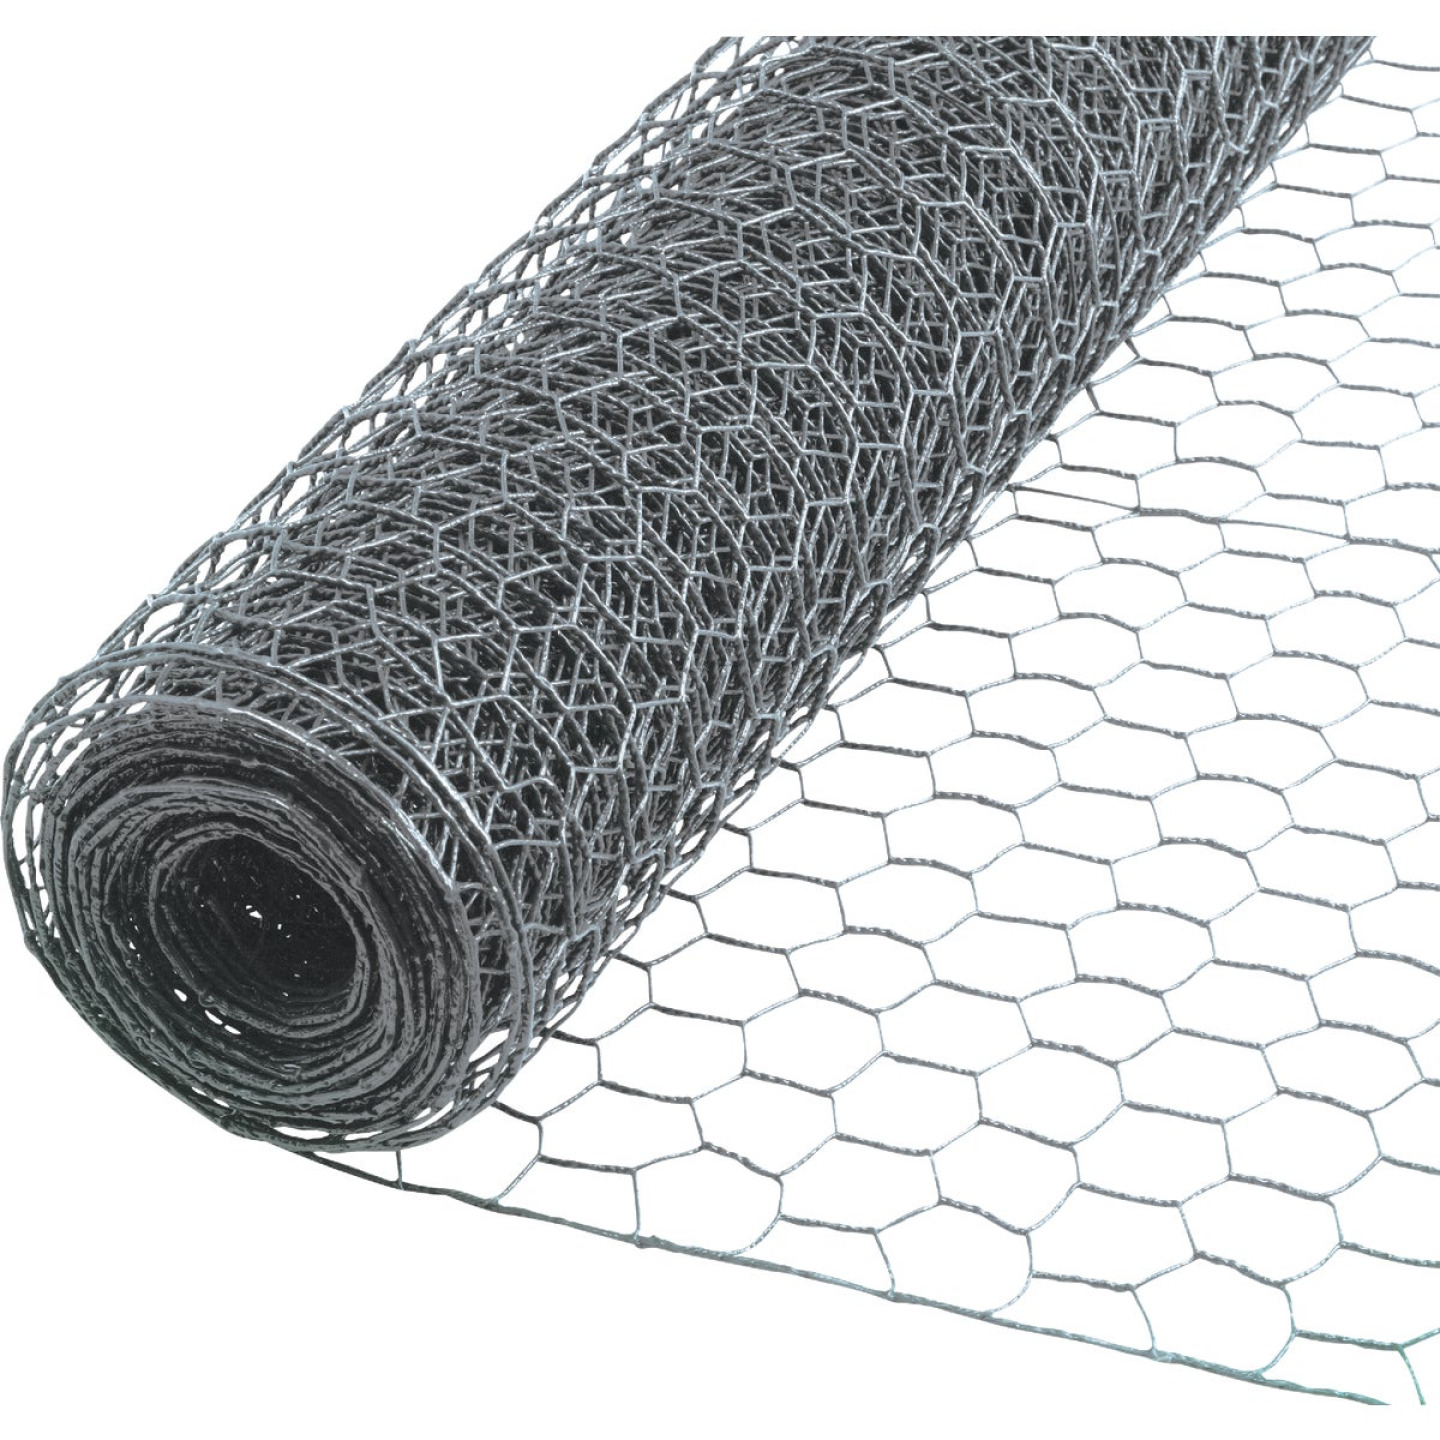 Do it 2 In. x 72 In. H. x 150 Ft. L. Hexagonal Wire Poultry Netting Image 1